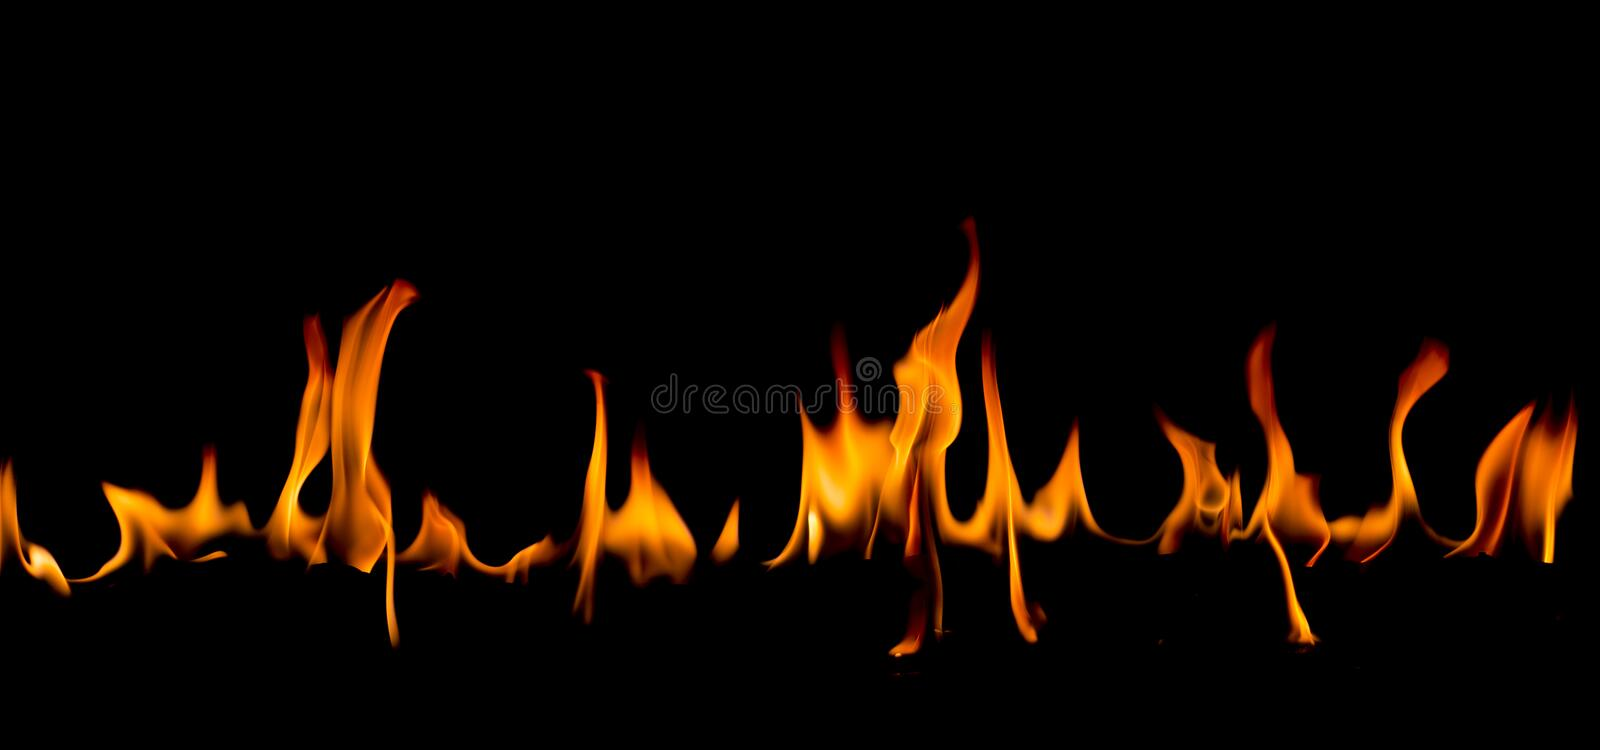 Fire flames on Abstract art black background, Burning red hot sparks rise. Fiery orange glowing flying particles stock photos